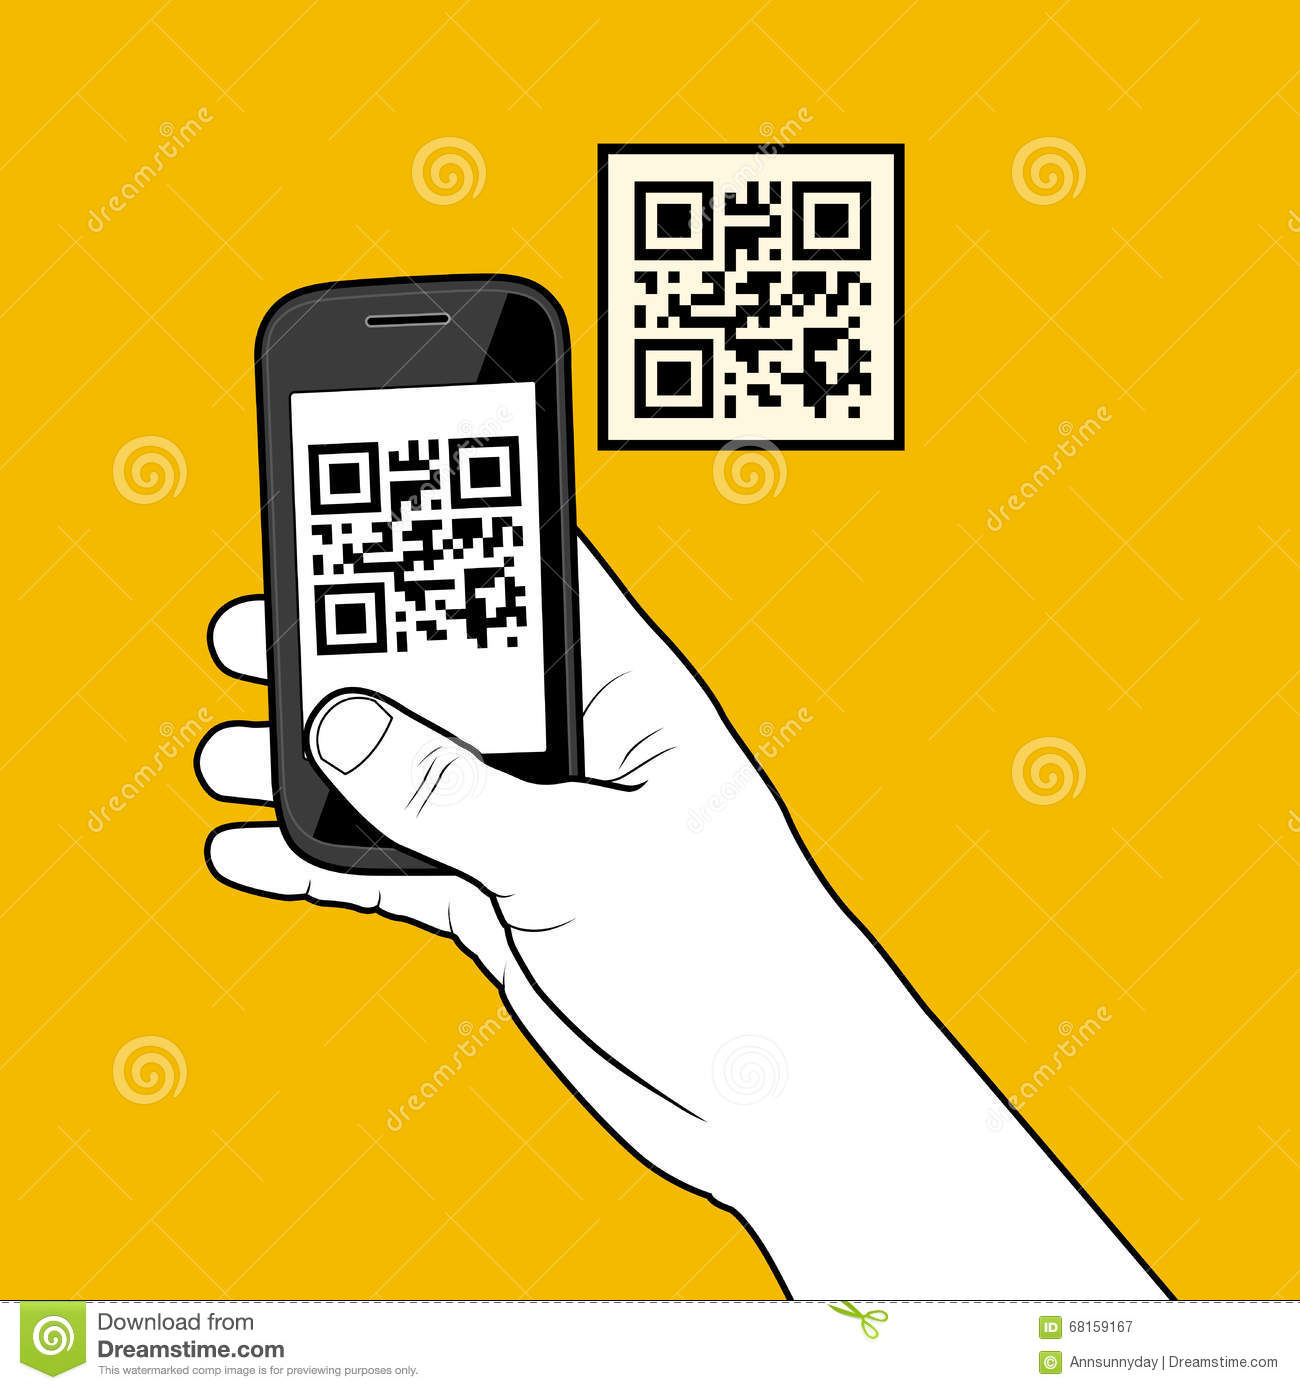 Hand With Smartphone Taking A QR Code Stock Photo